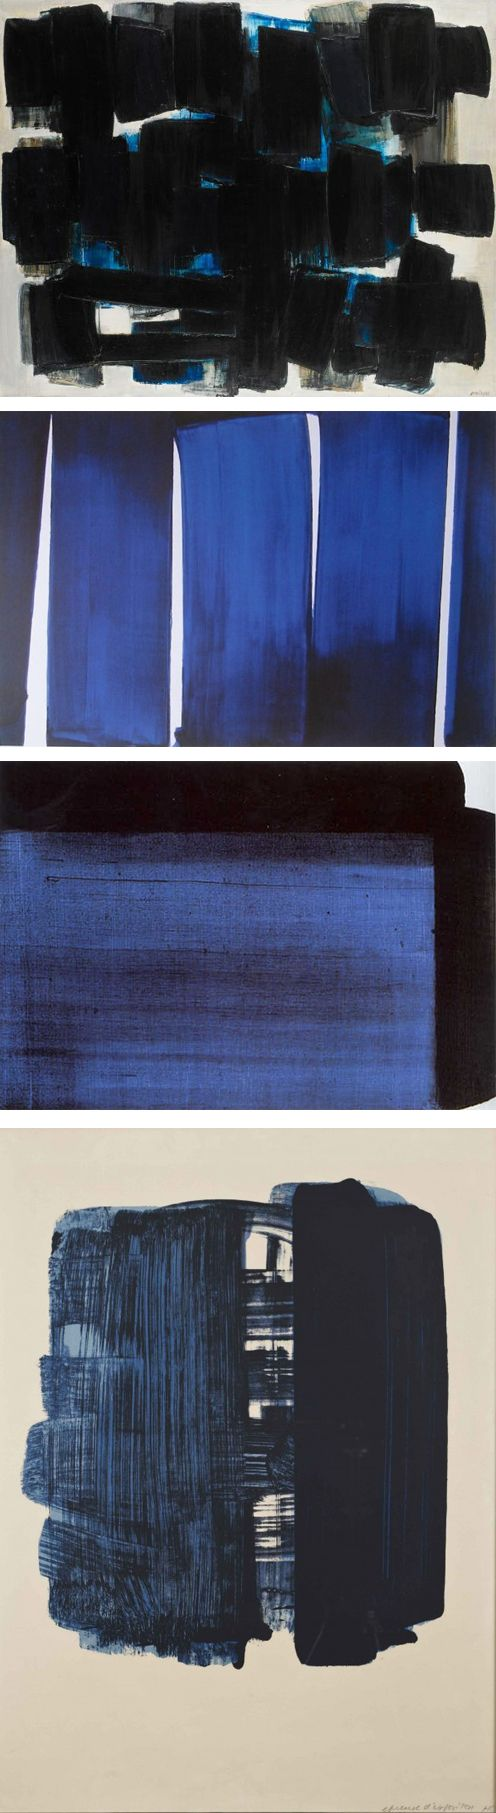 Soulages is a French Painter (1919) known for his contributions to the European abstract art movement.